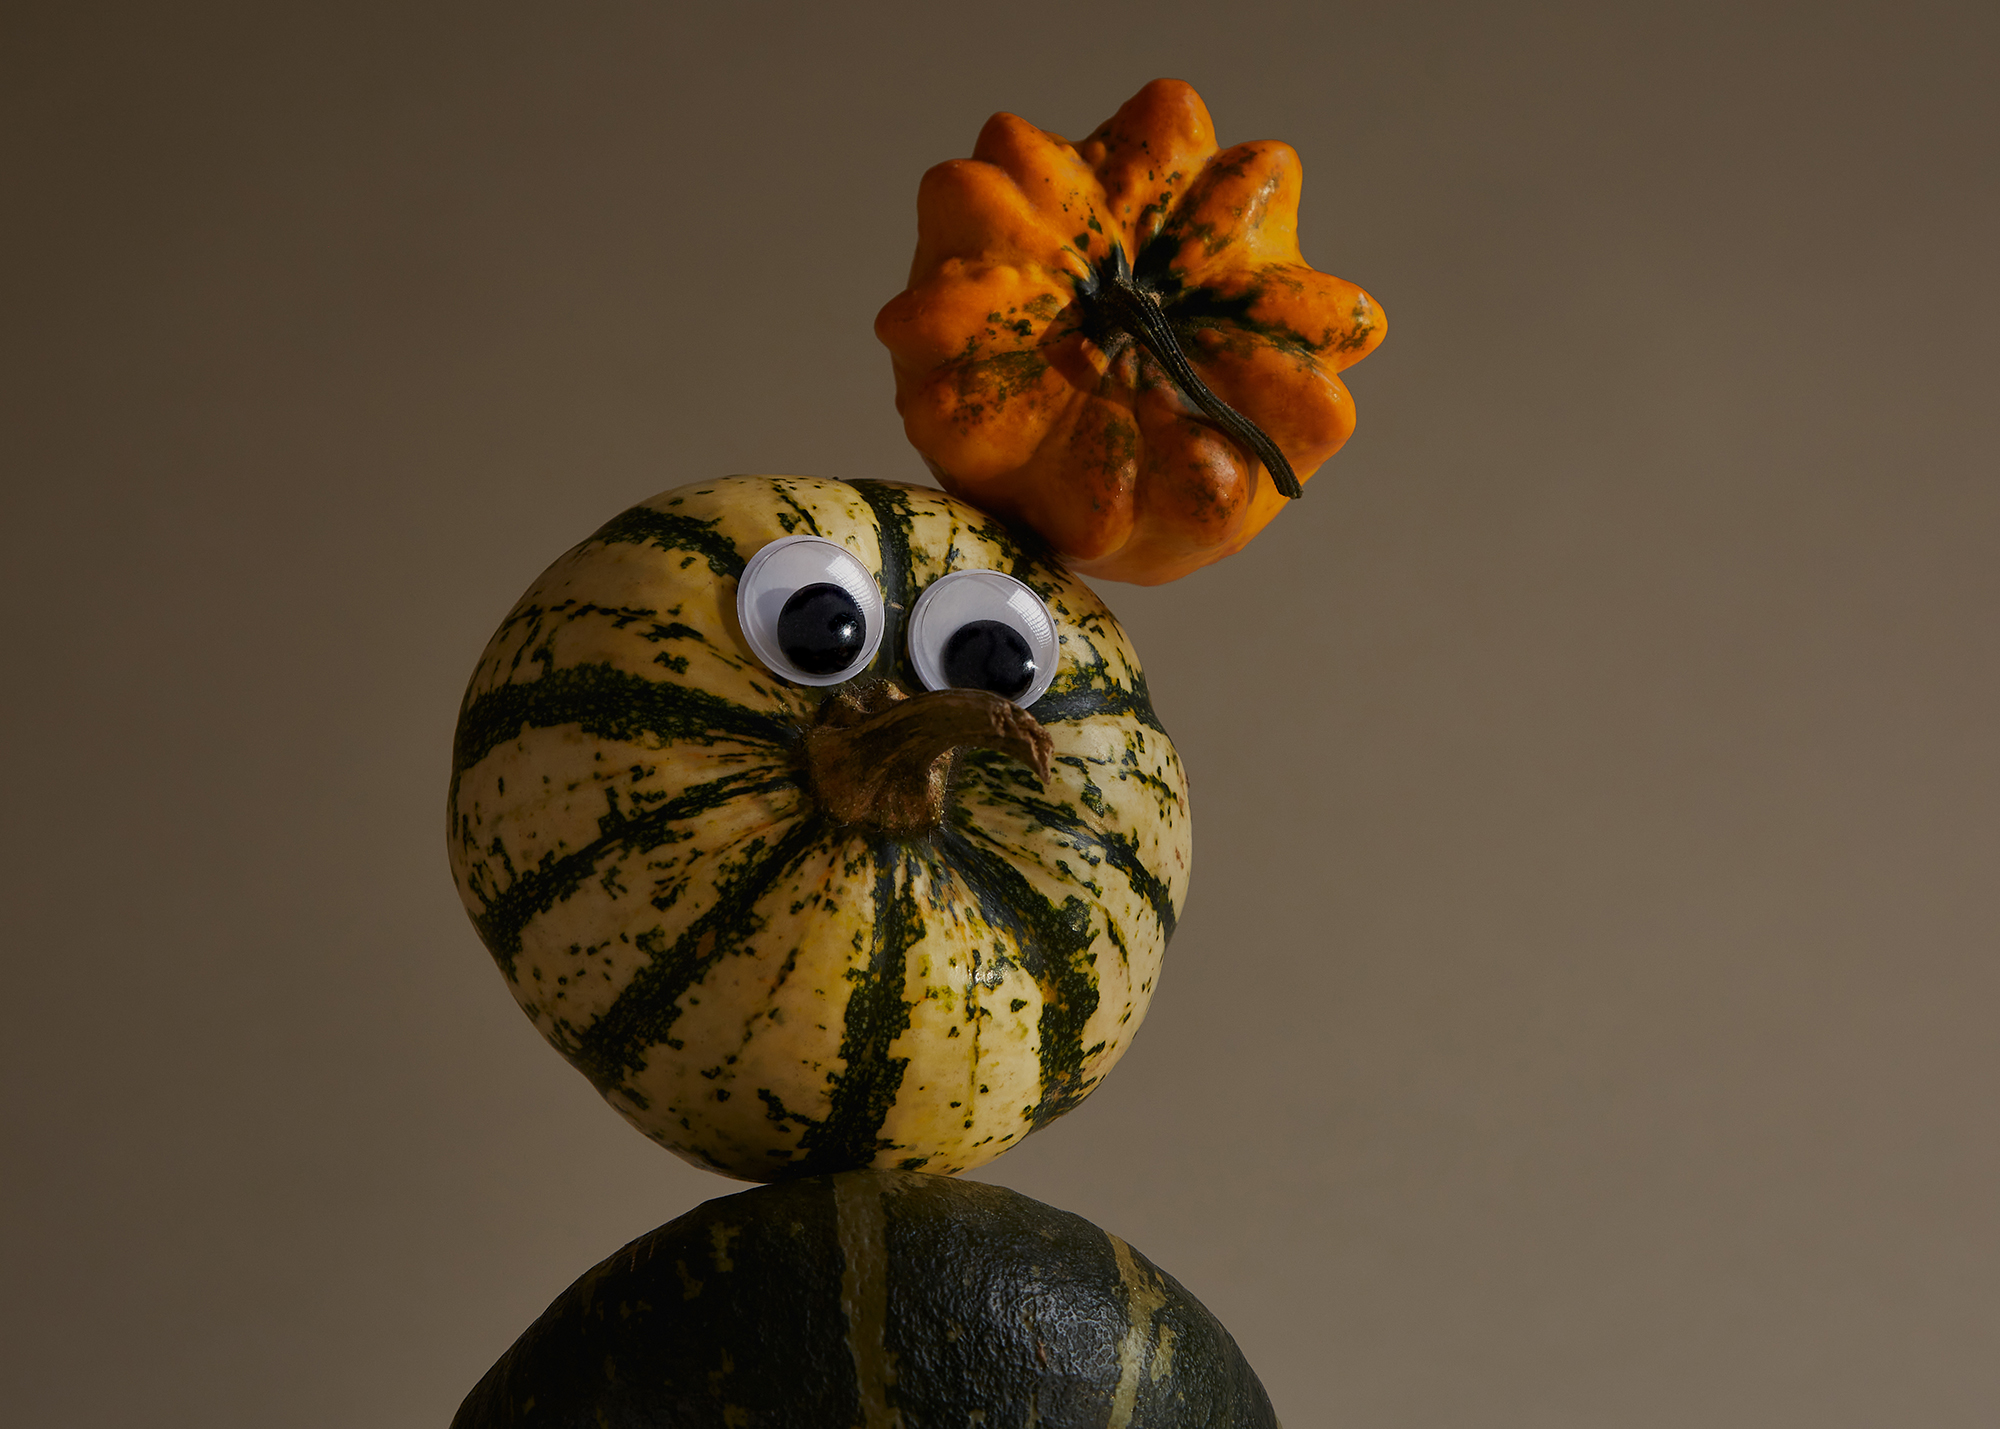 Rikki_Ward_Photographer_GOURDS_6